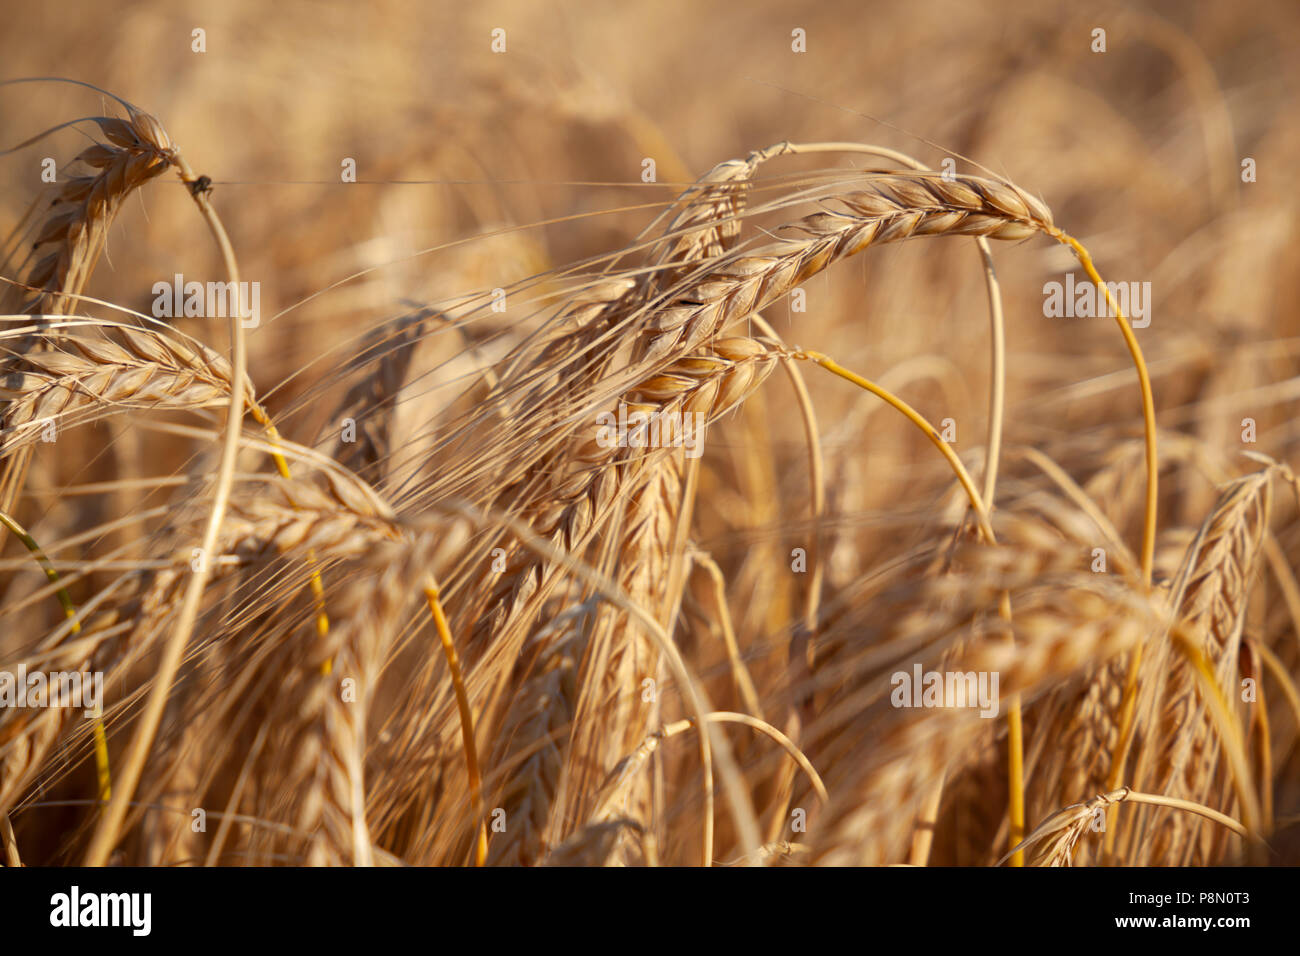 Close up of ripe golden-brown barley, Gloucestershire, England, United Kingdom, Europe - Stock Image